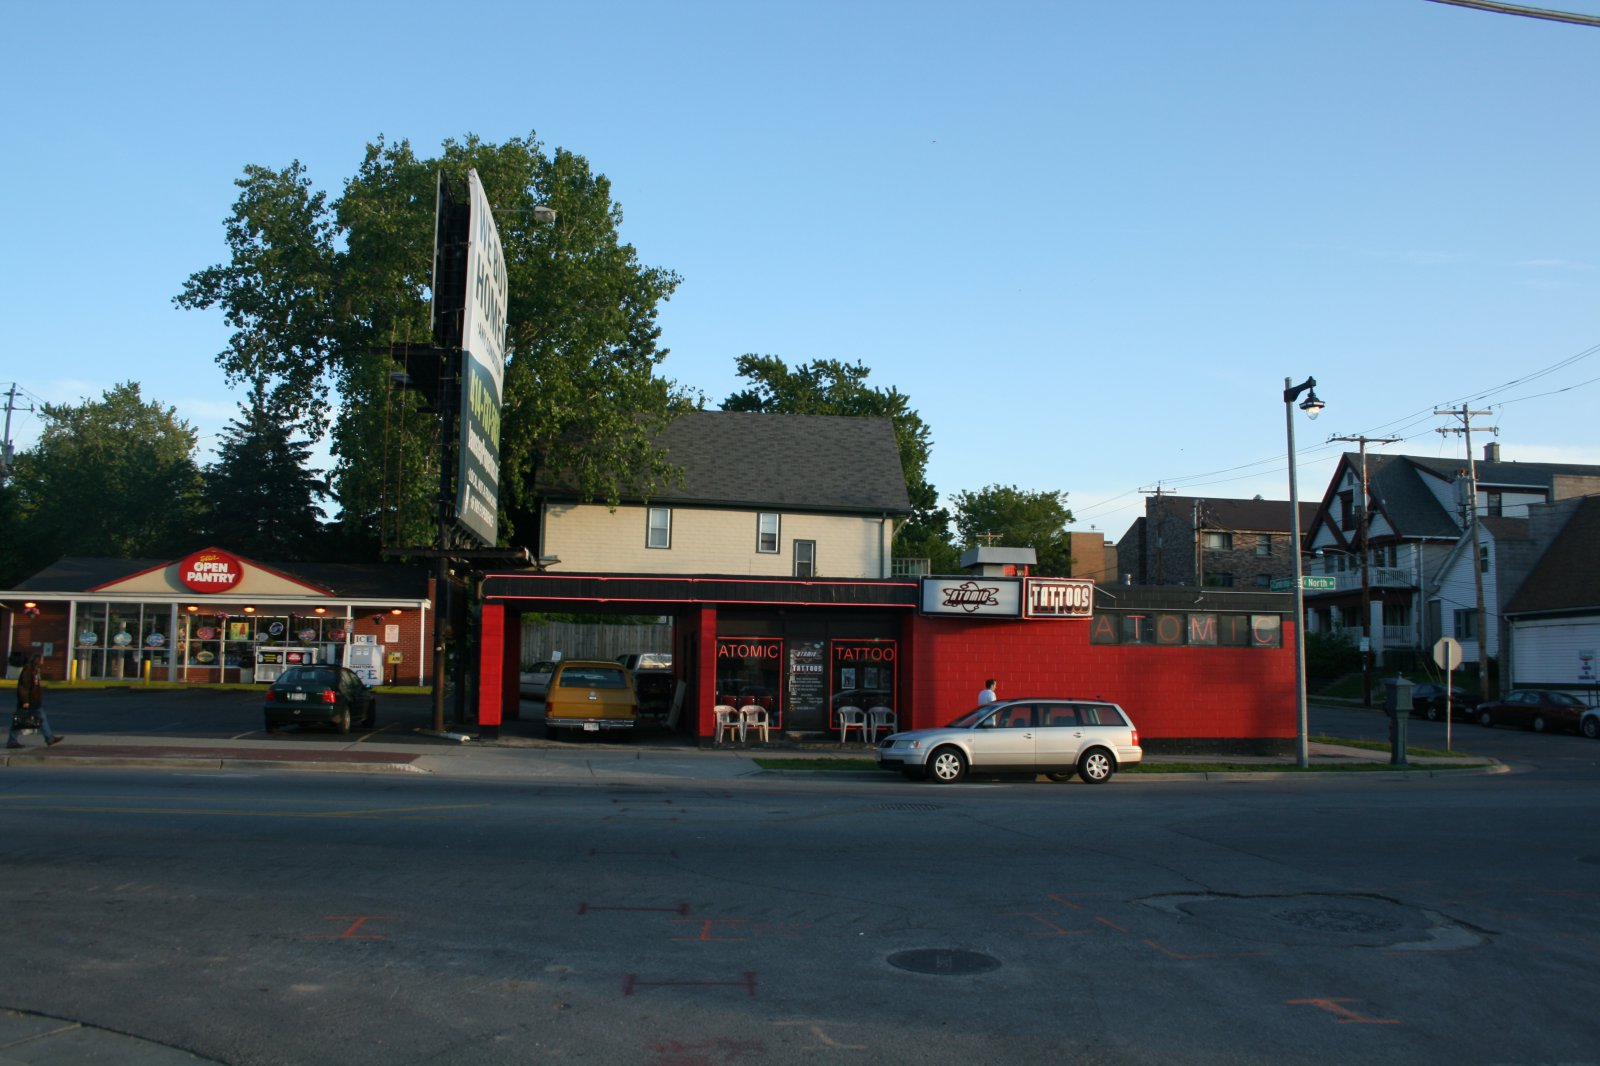 Open Pantry, 1515 E. North Ave. and Atomic Tattoos, 1507 E. North Ave.